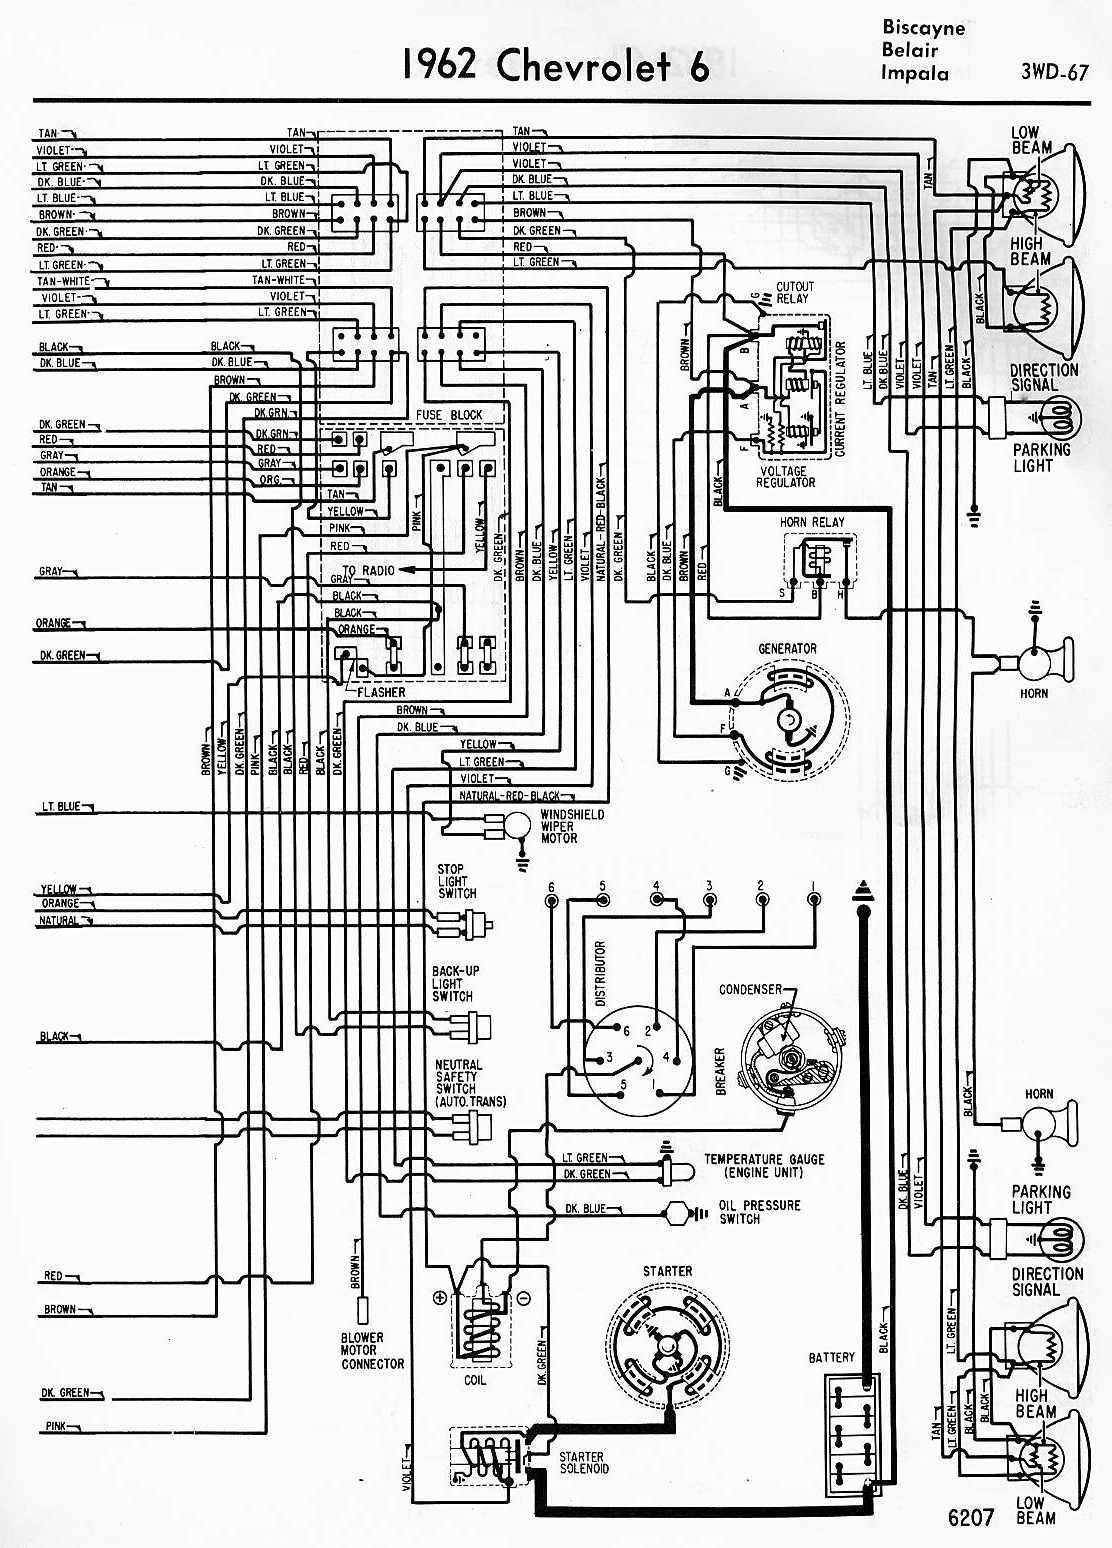 medium resolution of 66 6 cylinder gm wiring harness diagram wiring diagrams rh 3 kunstvorort waltrop de automotive wiring